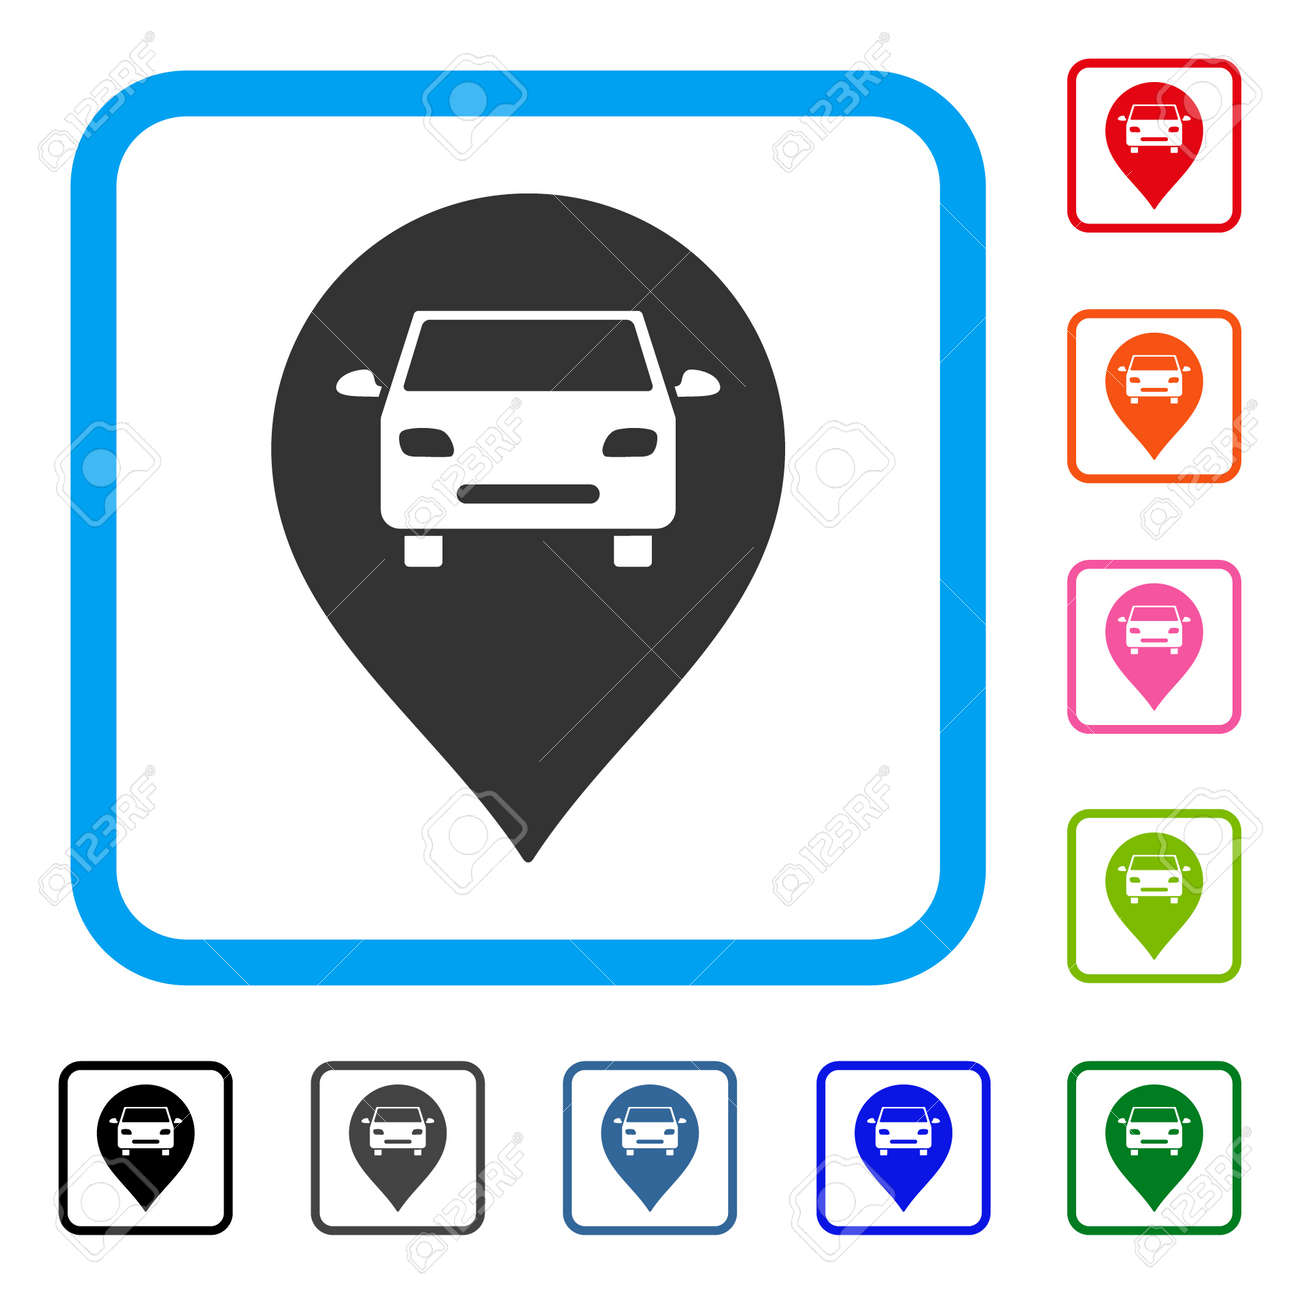 Car map marker icon symbol in a light blue rounded squared frame. Google Map Marker Icon on google map icon symbols, google map icon clip art, google maps android icon, google map dyersburg tn, google map icon police, map pin icon, google map from space, google map pin, google maps detroit area, google map with markers, google earth icon guide, old google maps icon, map locator icon, multi-select icon, google map icon maker, google maps icons shapes, google maps navigation icon, map pointer icon, google maps placemark icons, google maps custom icons,